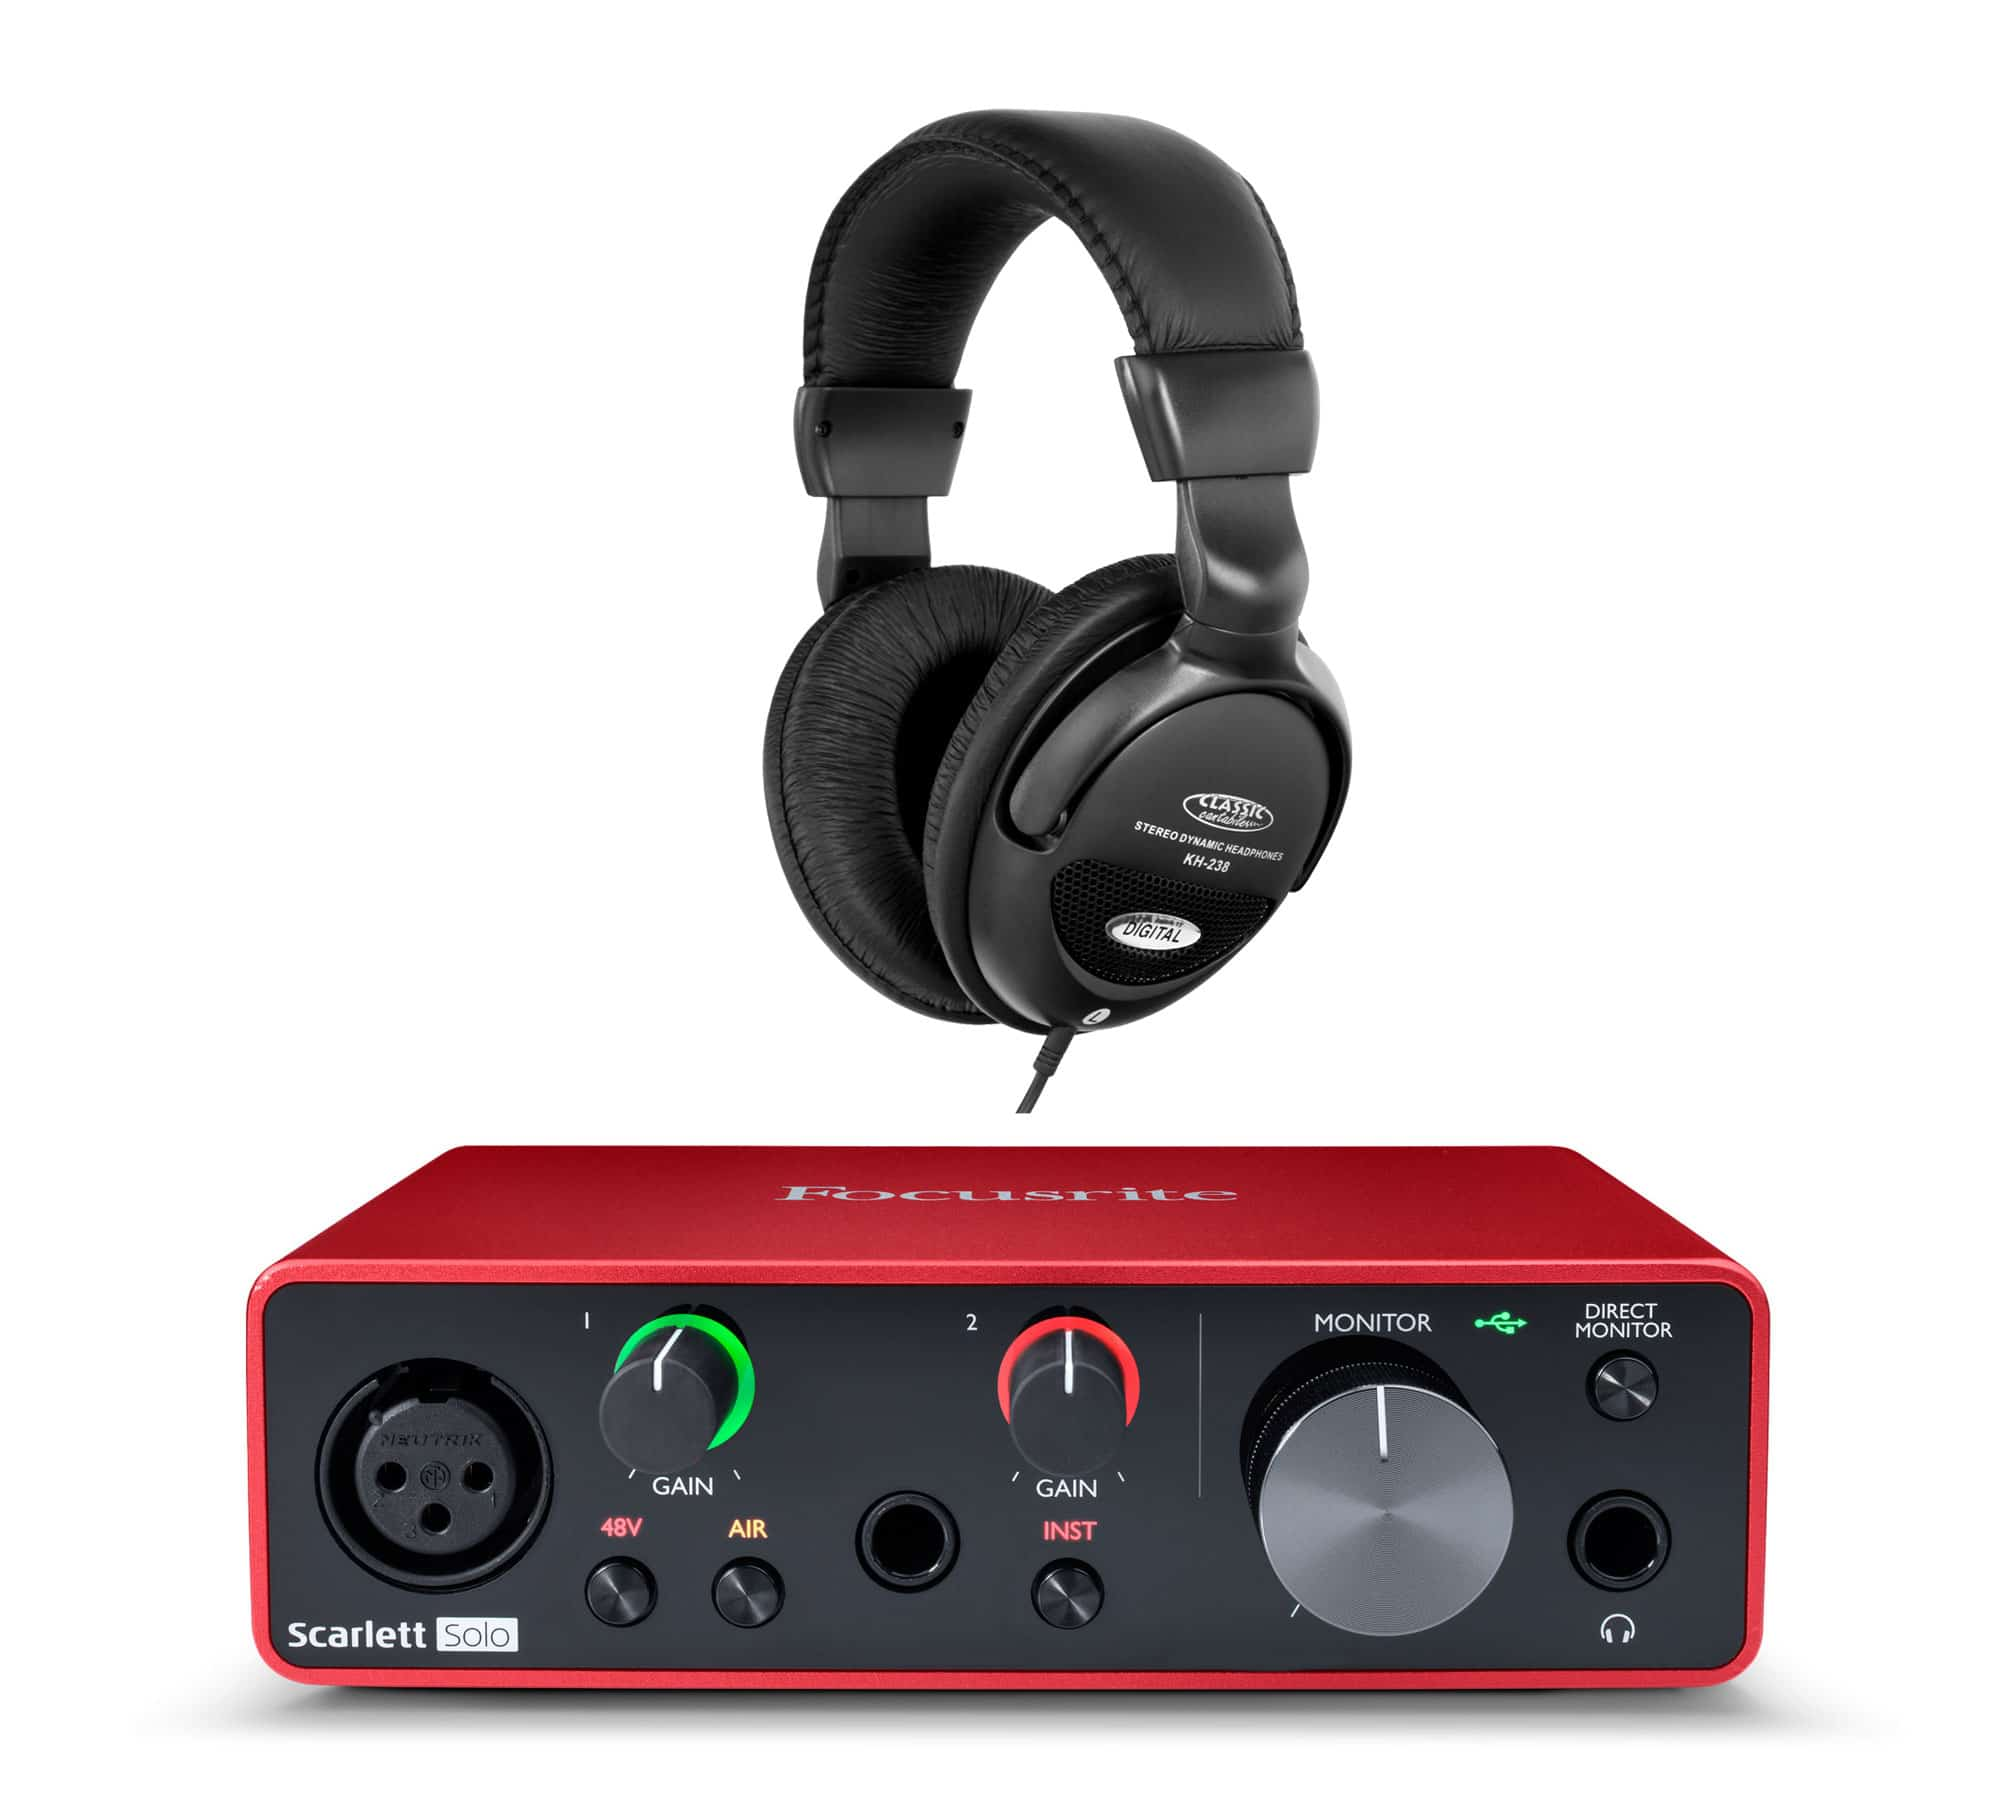 Pchardware - Focusrite Scarlett Solo USB Audio Interface Set - Onlineshop Musikhaus Kirstein